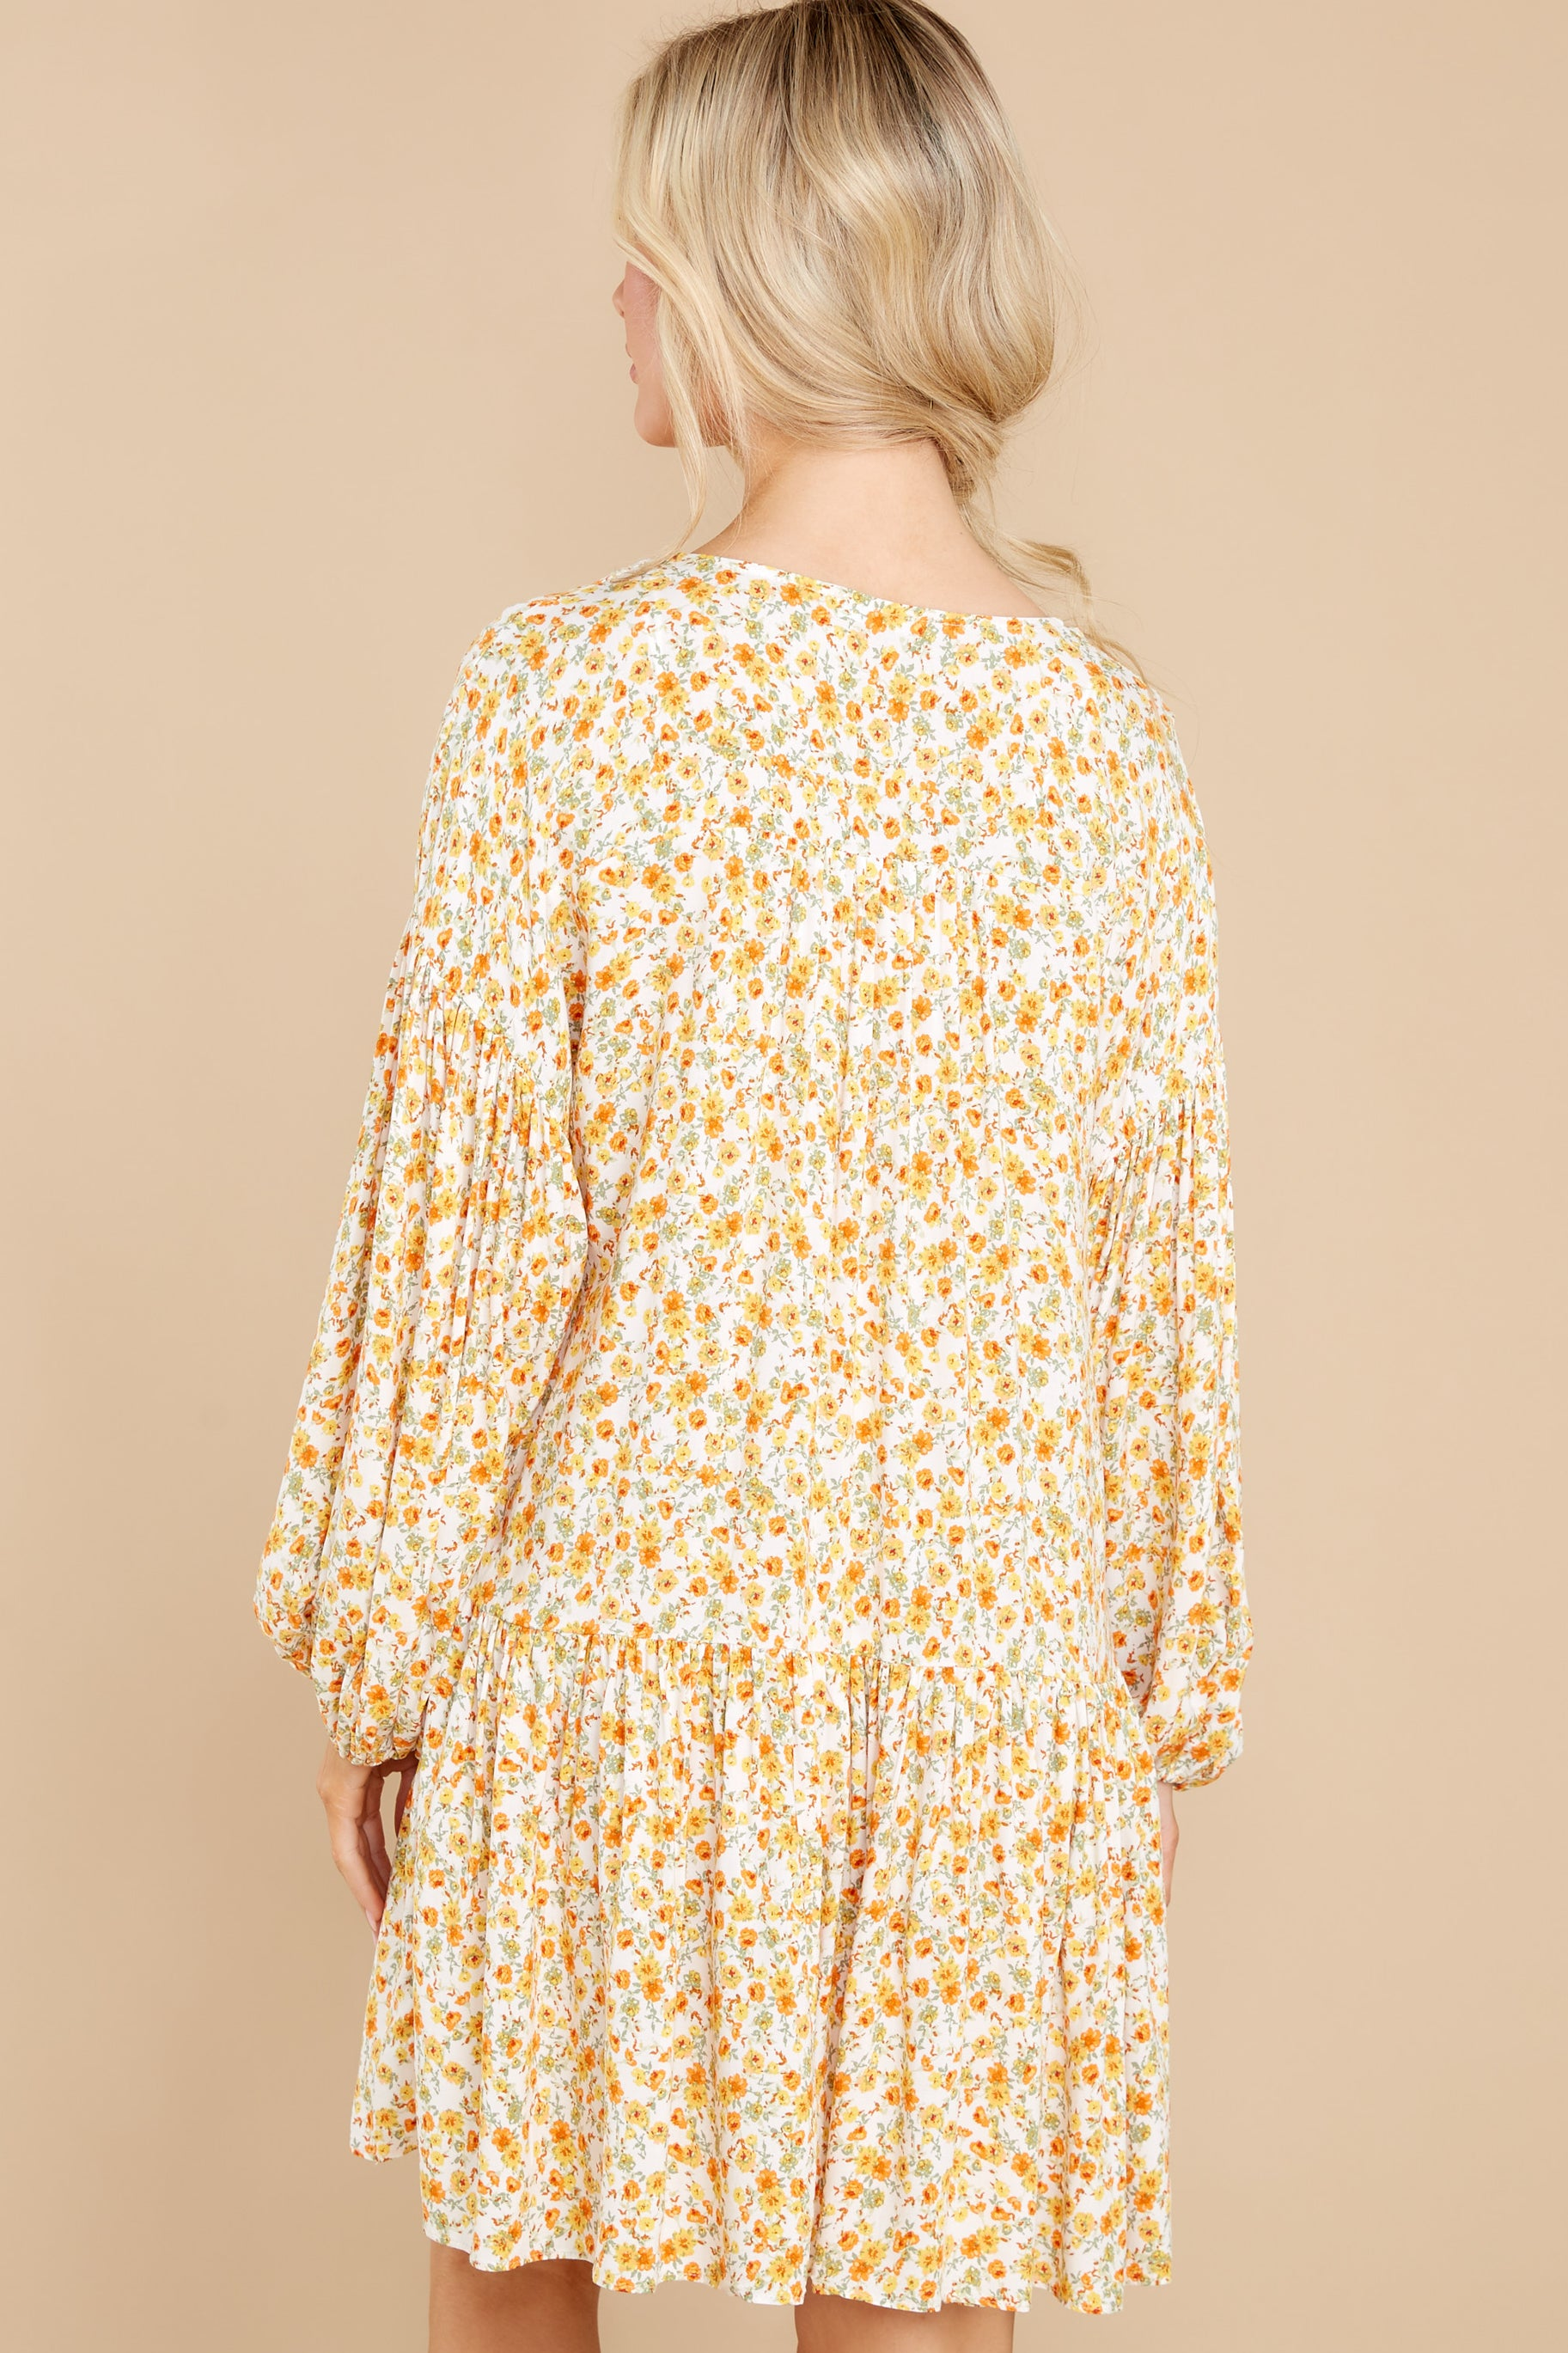 8 Far Away Places Yellow And Orange Floral Print Dress at reddress.com